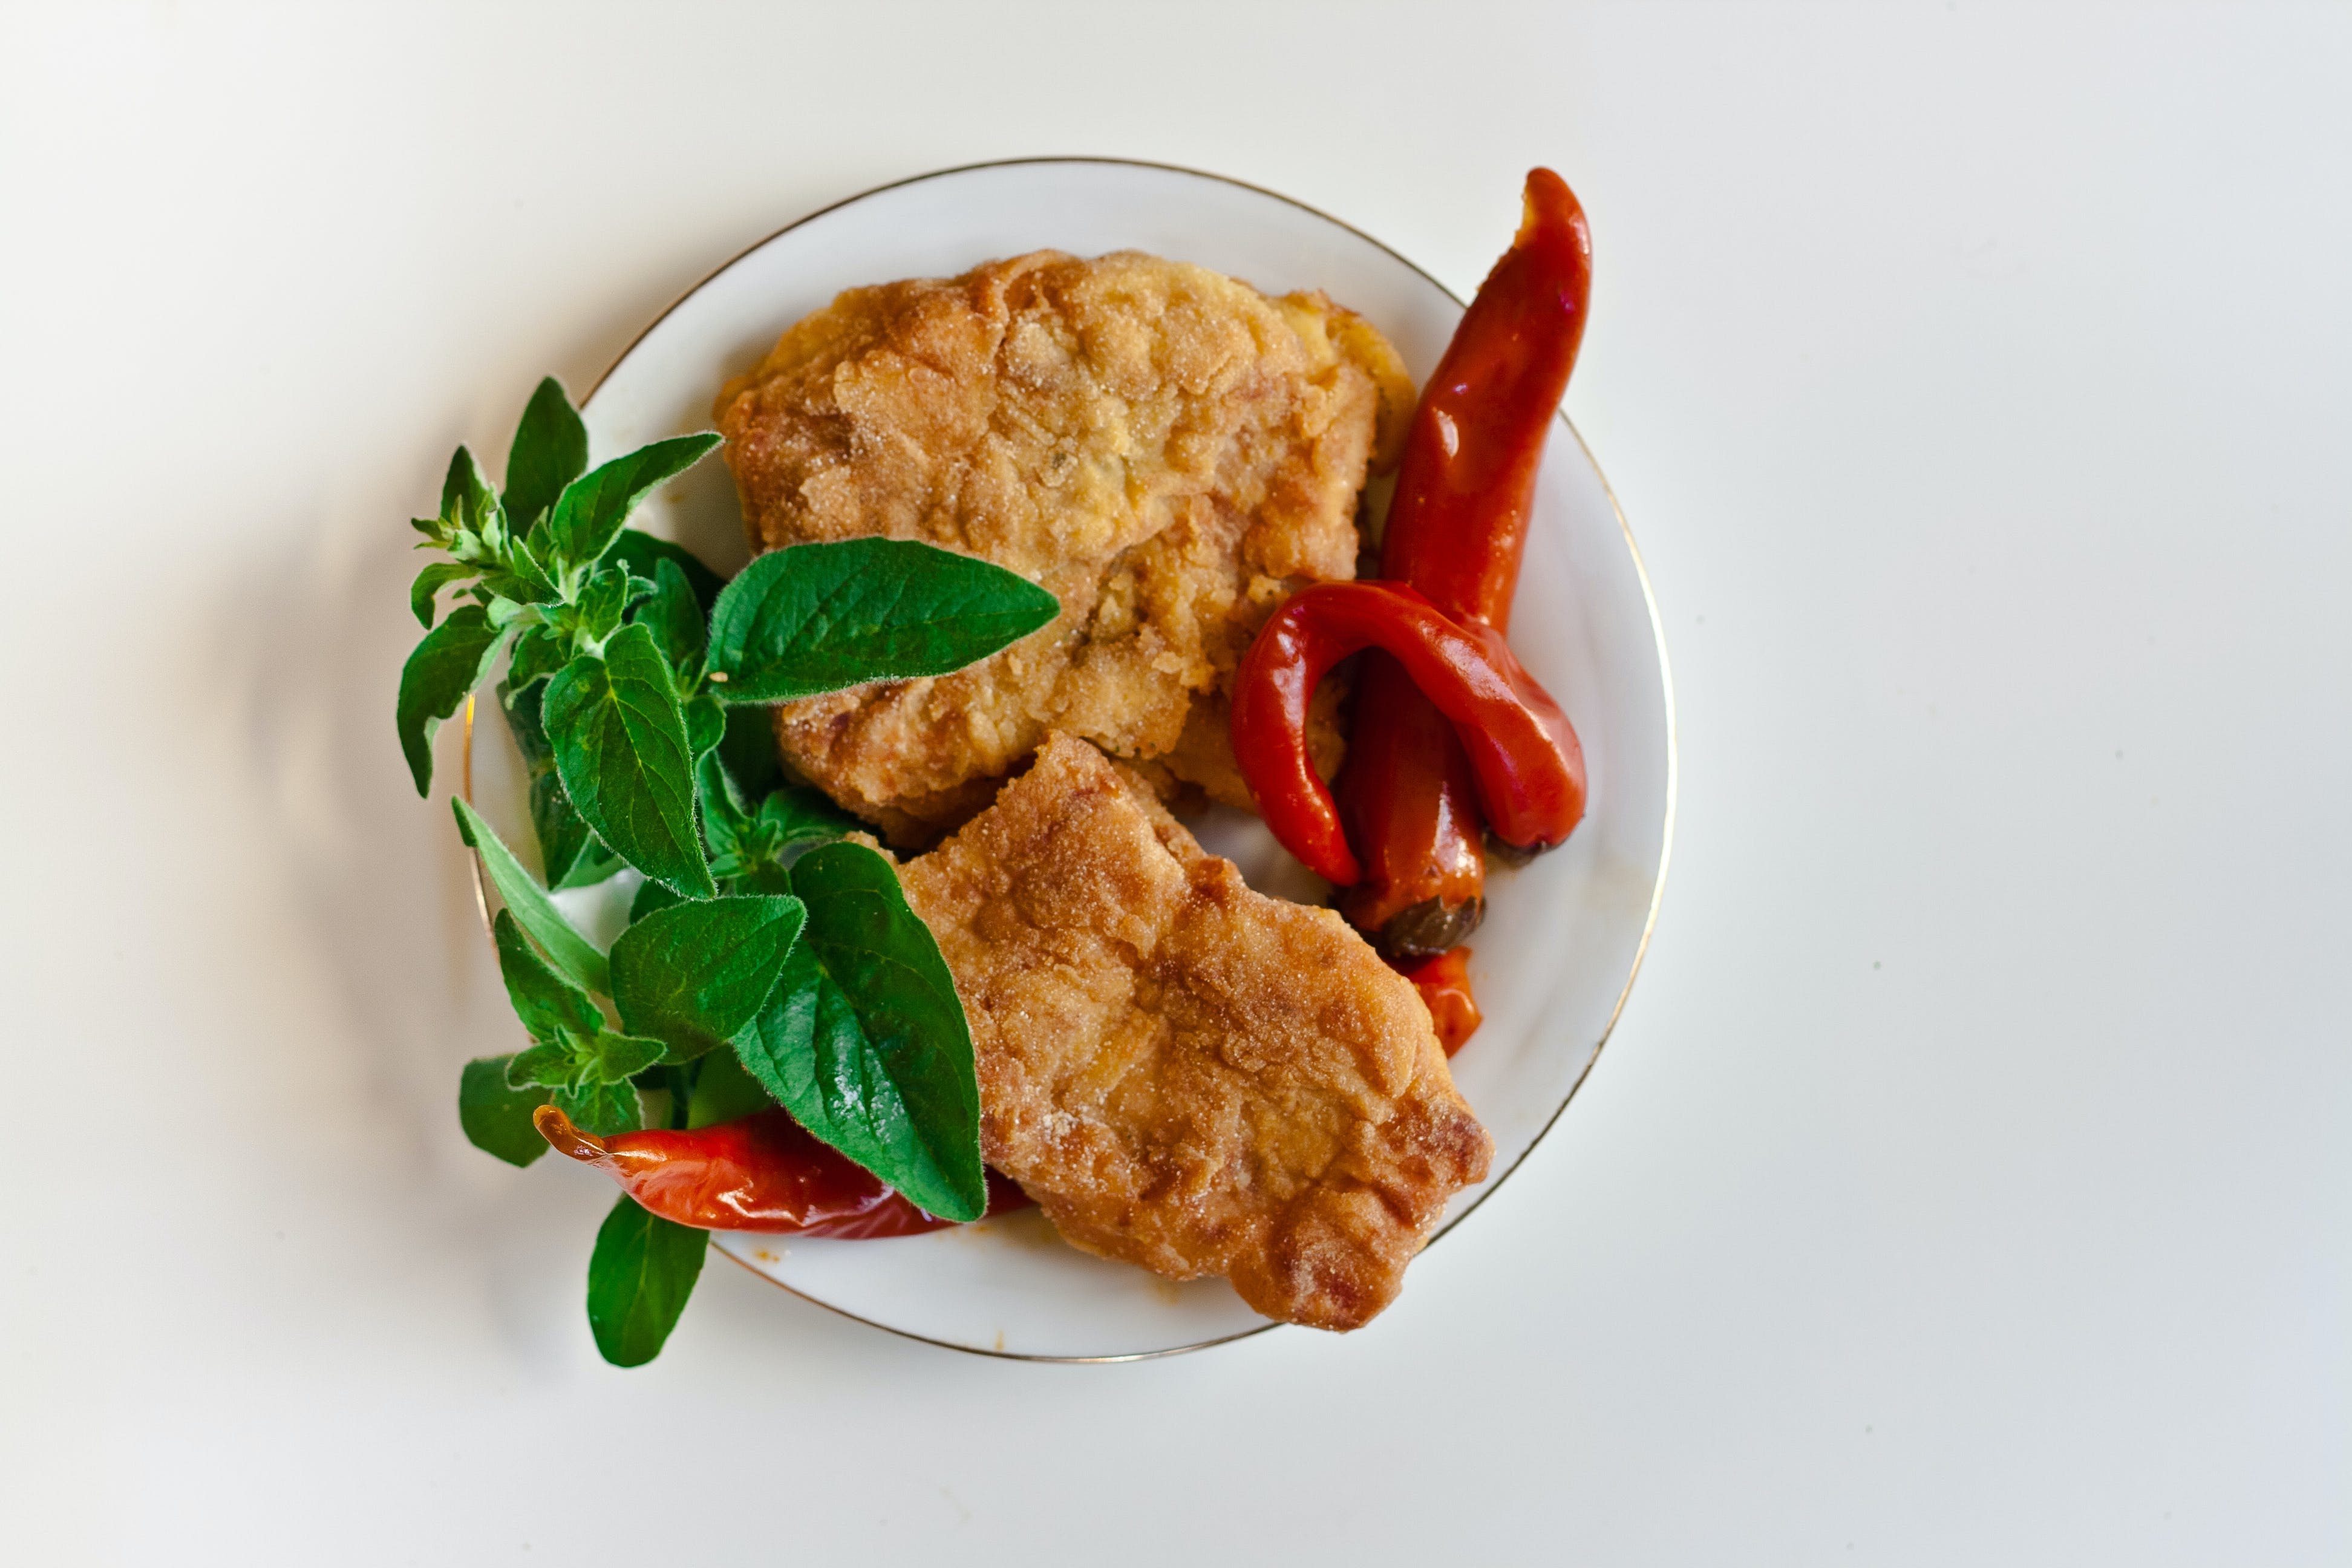 Fried fish with chili pepper and mint